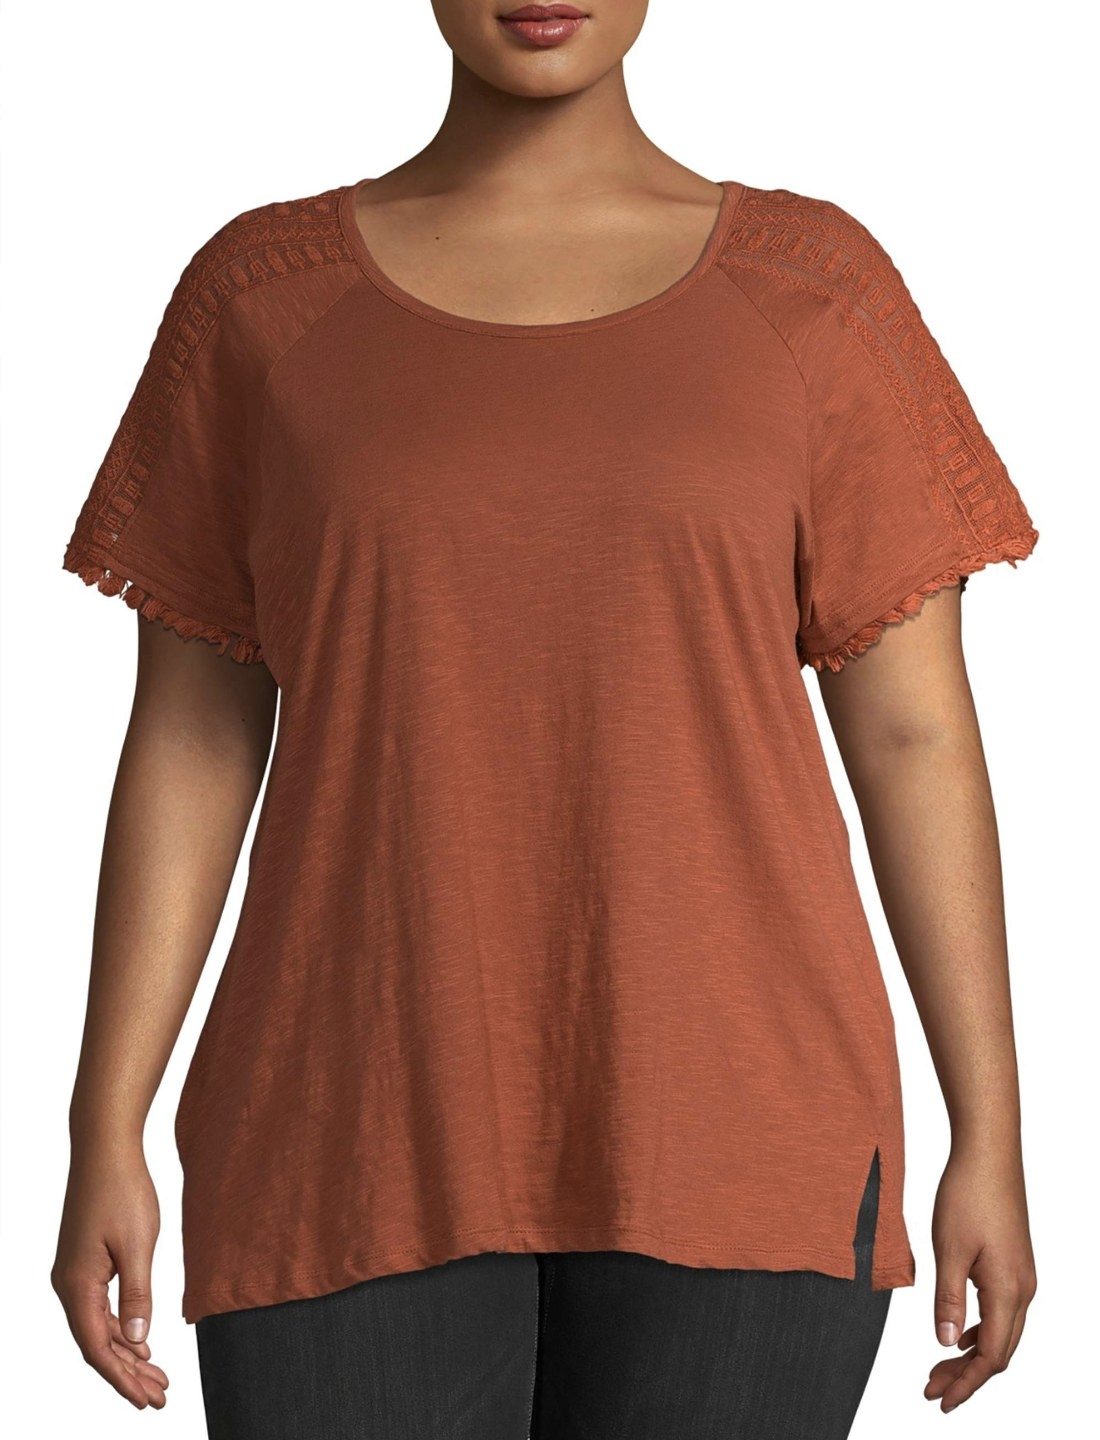 Model in the orange T-shirt with lace-trim sleeves